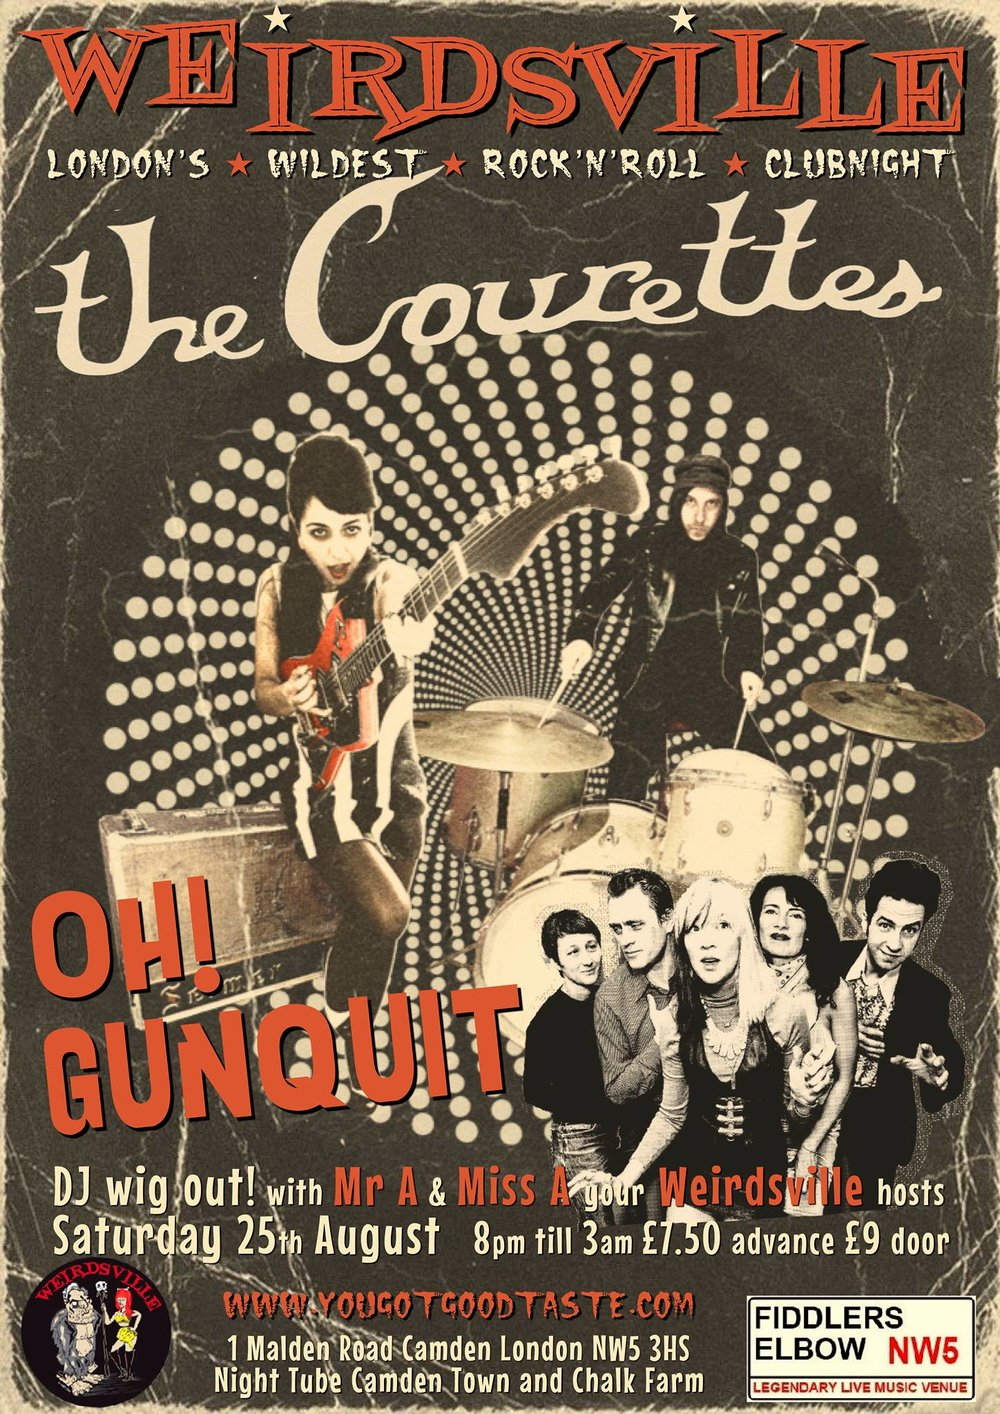 Weirdsville - The Courettes, Oh! Gunquit, DJs Mr A & Miss A at The Fiddler's Elbow promotional image